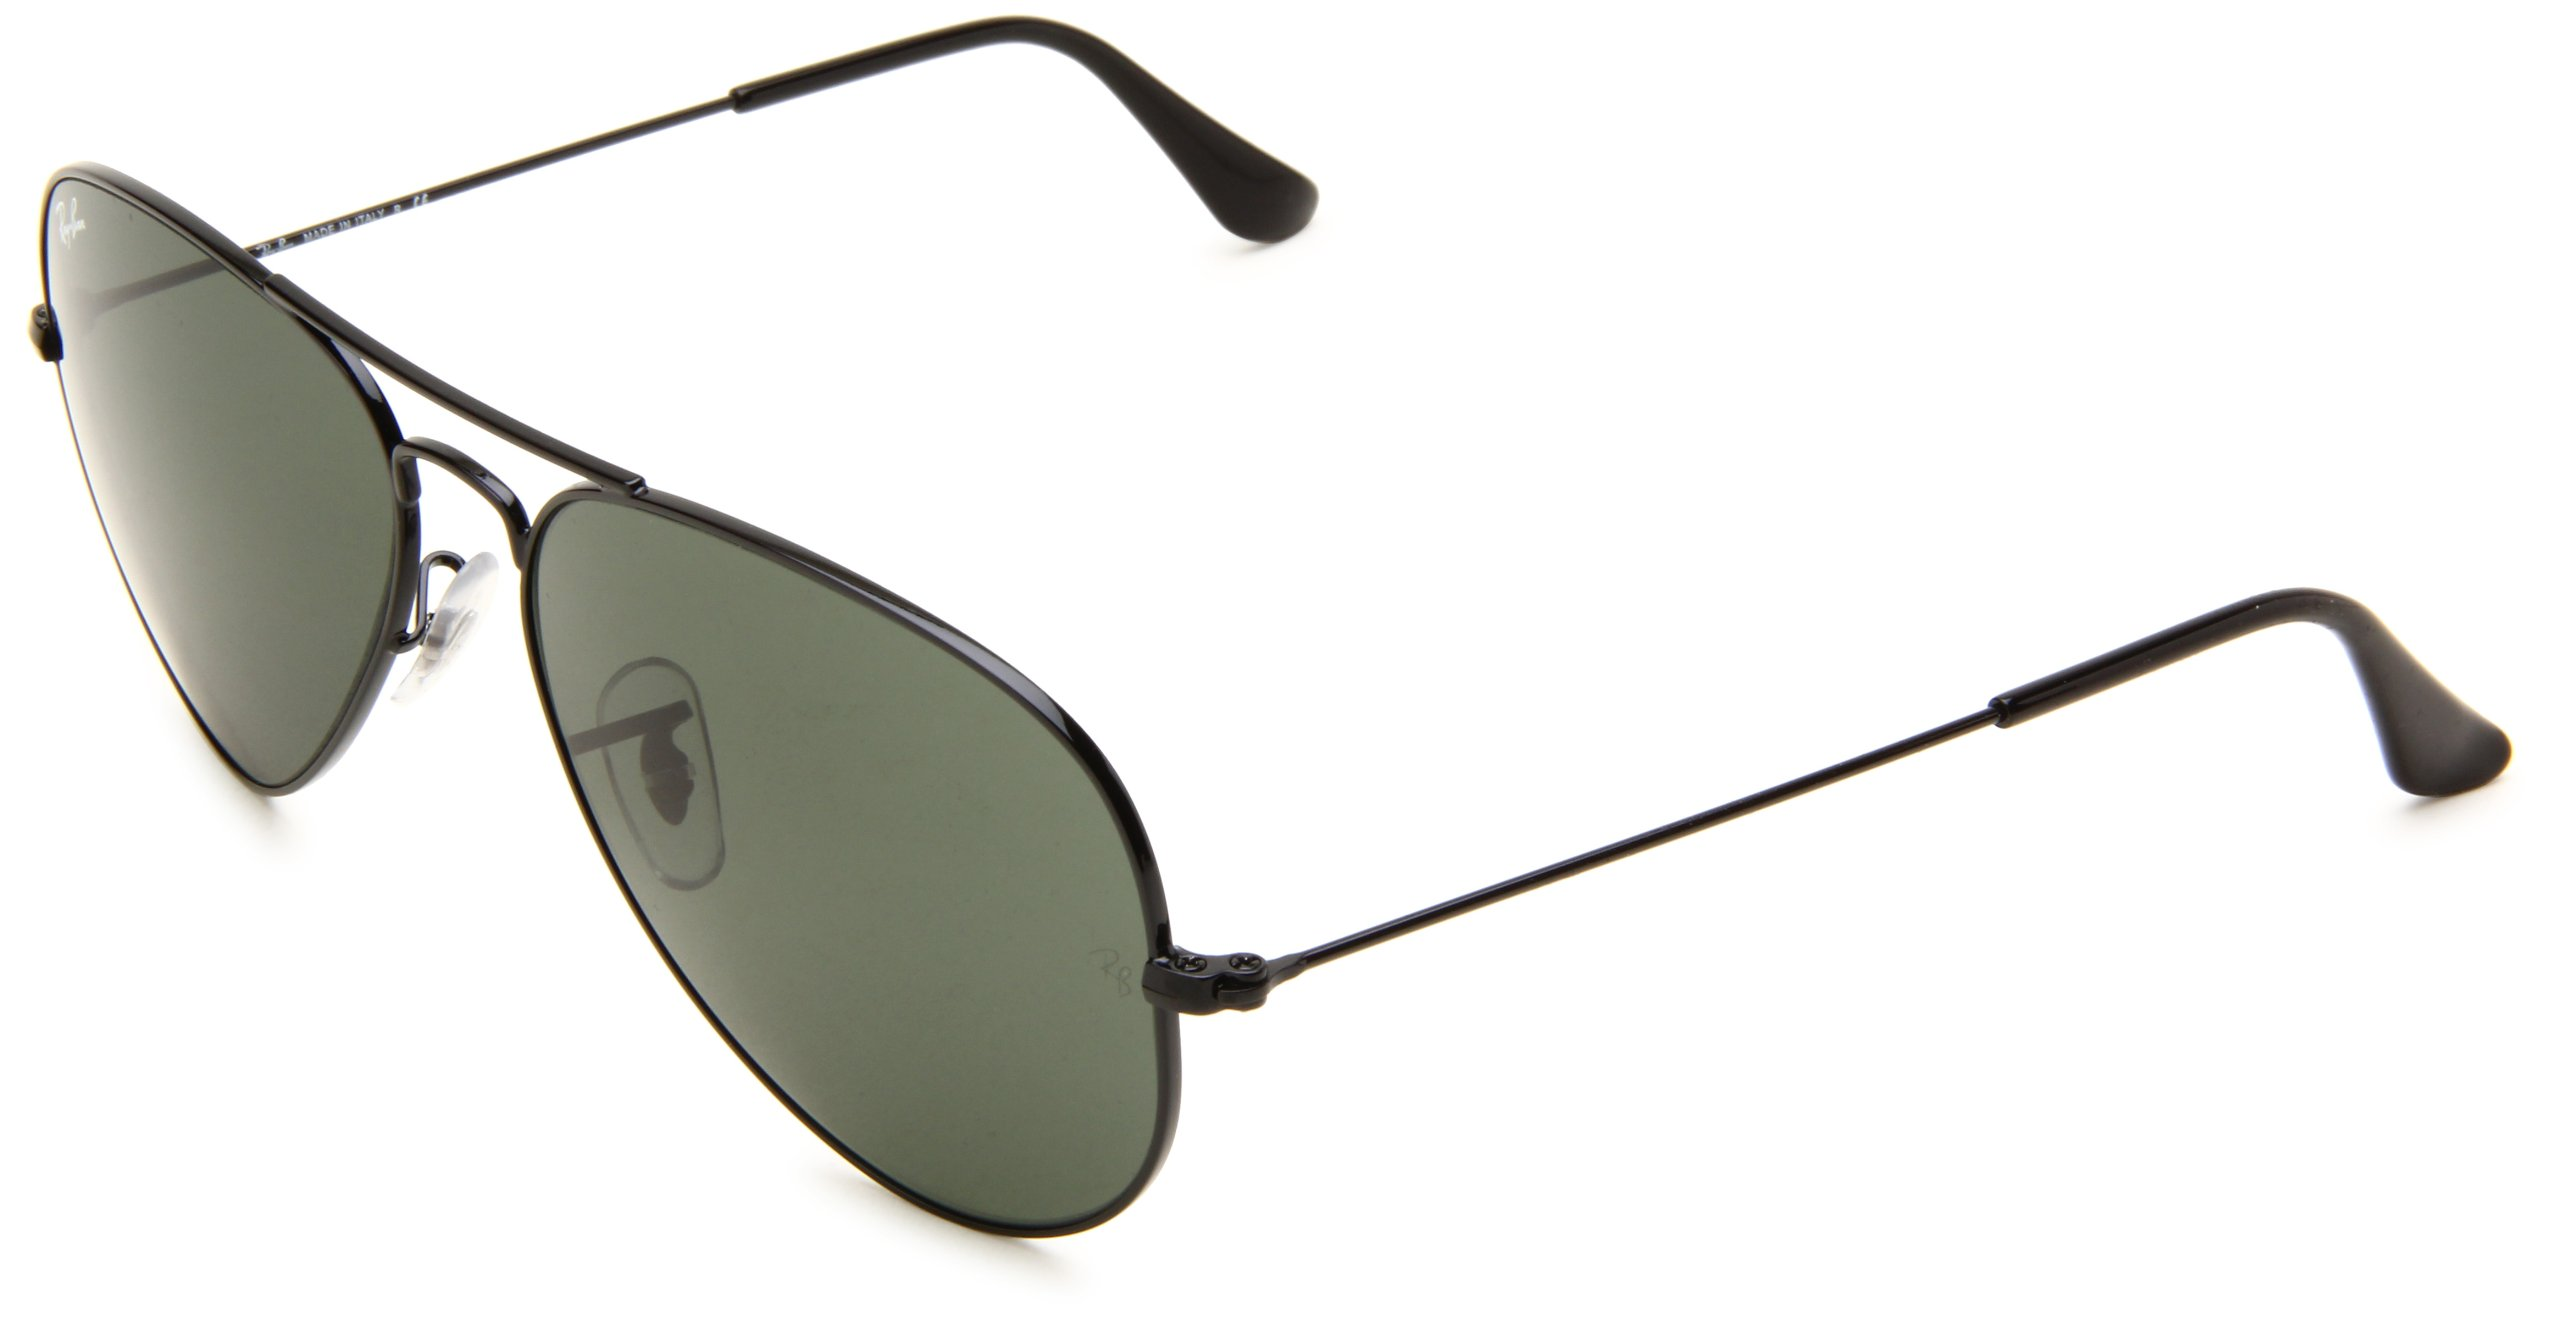 Ray-Ban Aviator Classic, Glossy Black/ Grey Green, One Size by Ray-Ban